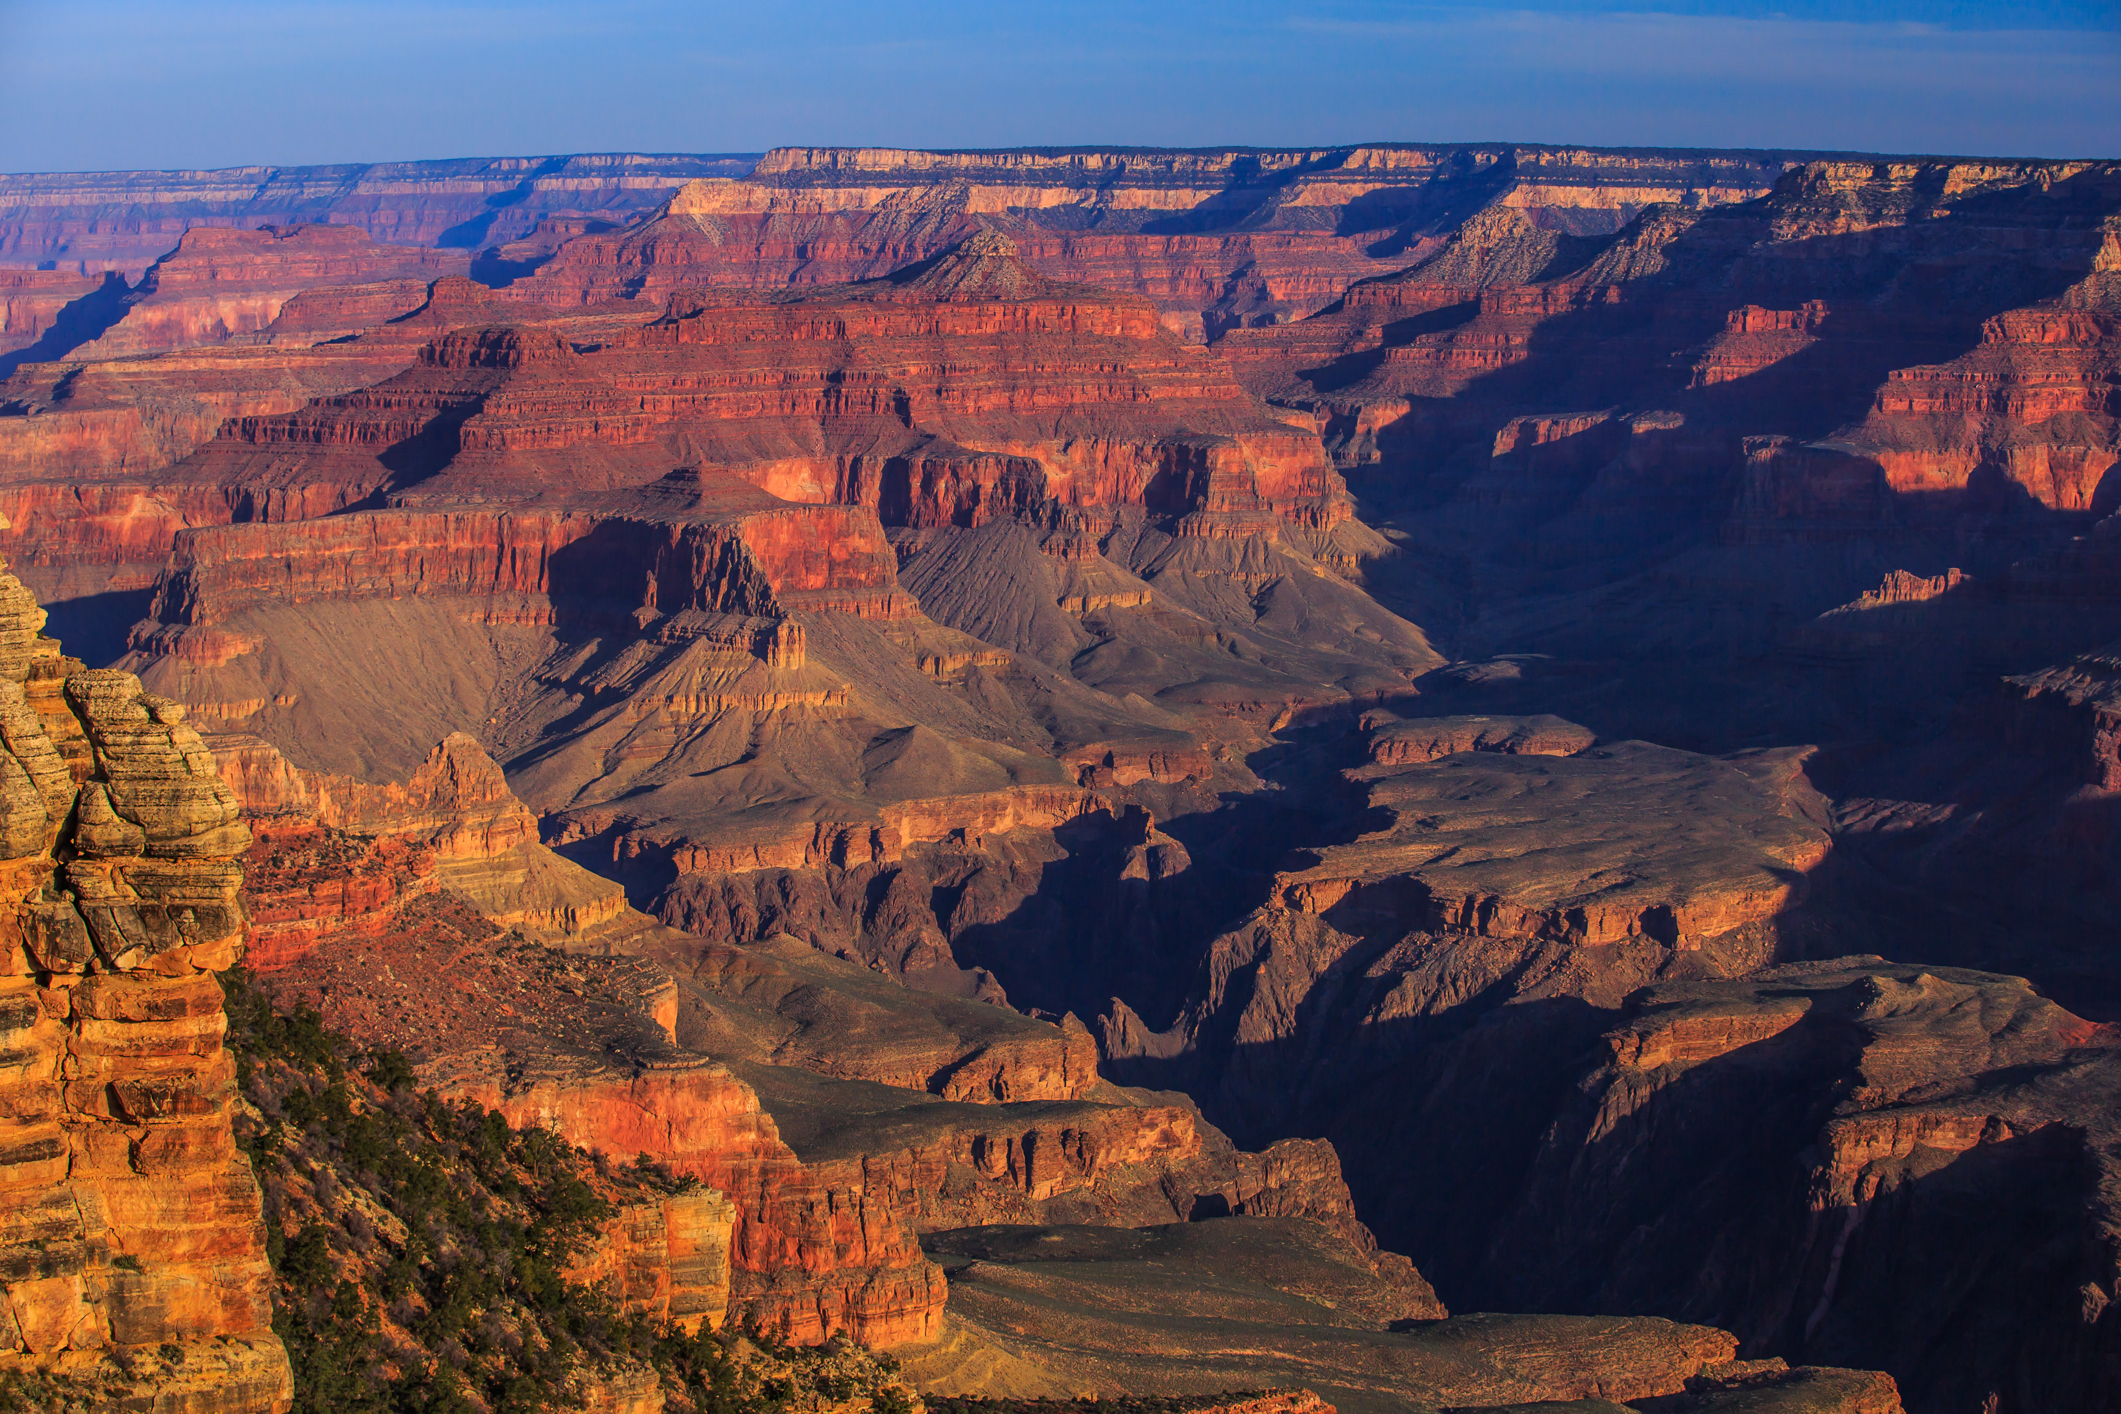 Grand Canyon from the South Rim at dawn. Photo taken on March 27, 2013.